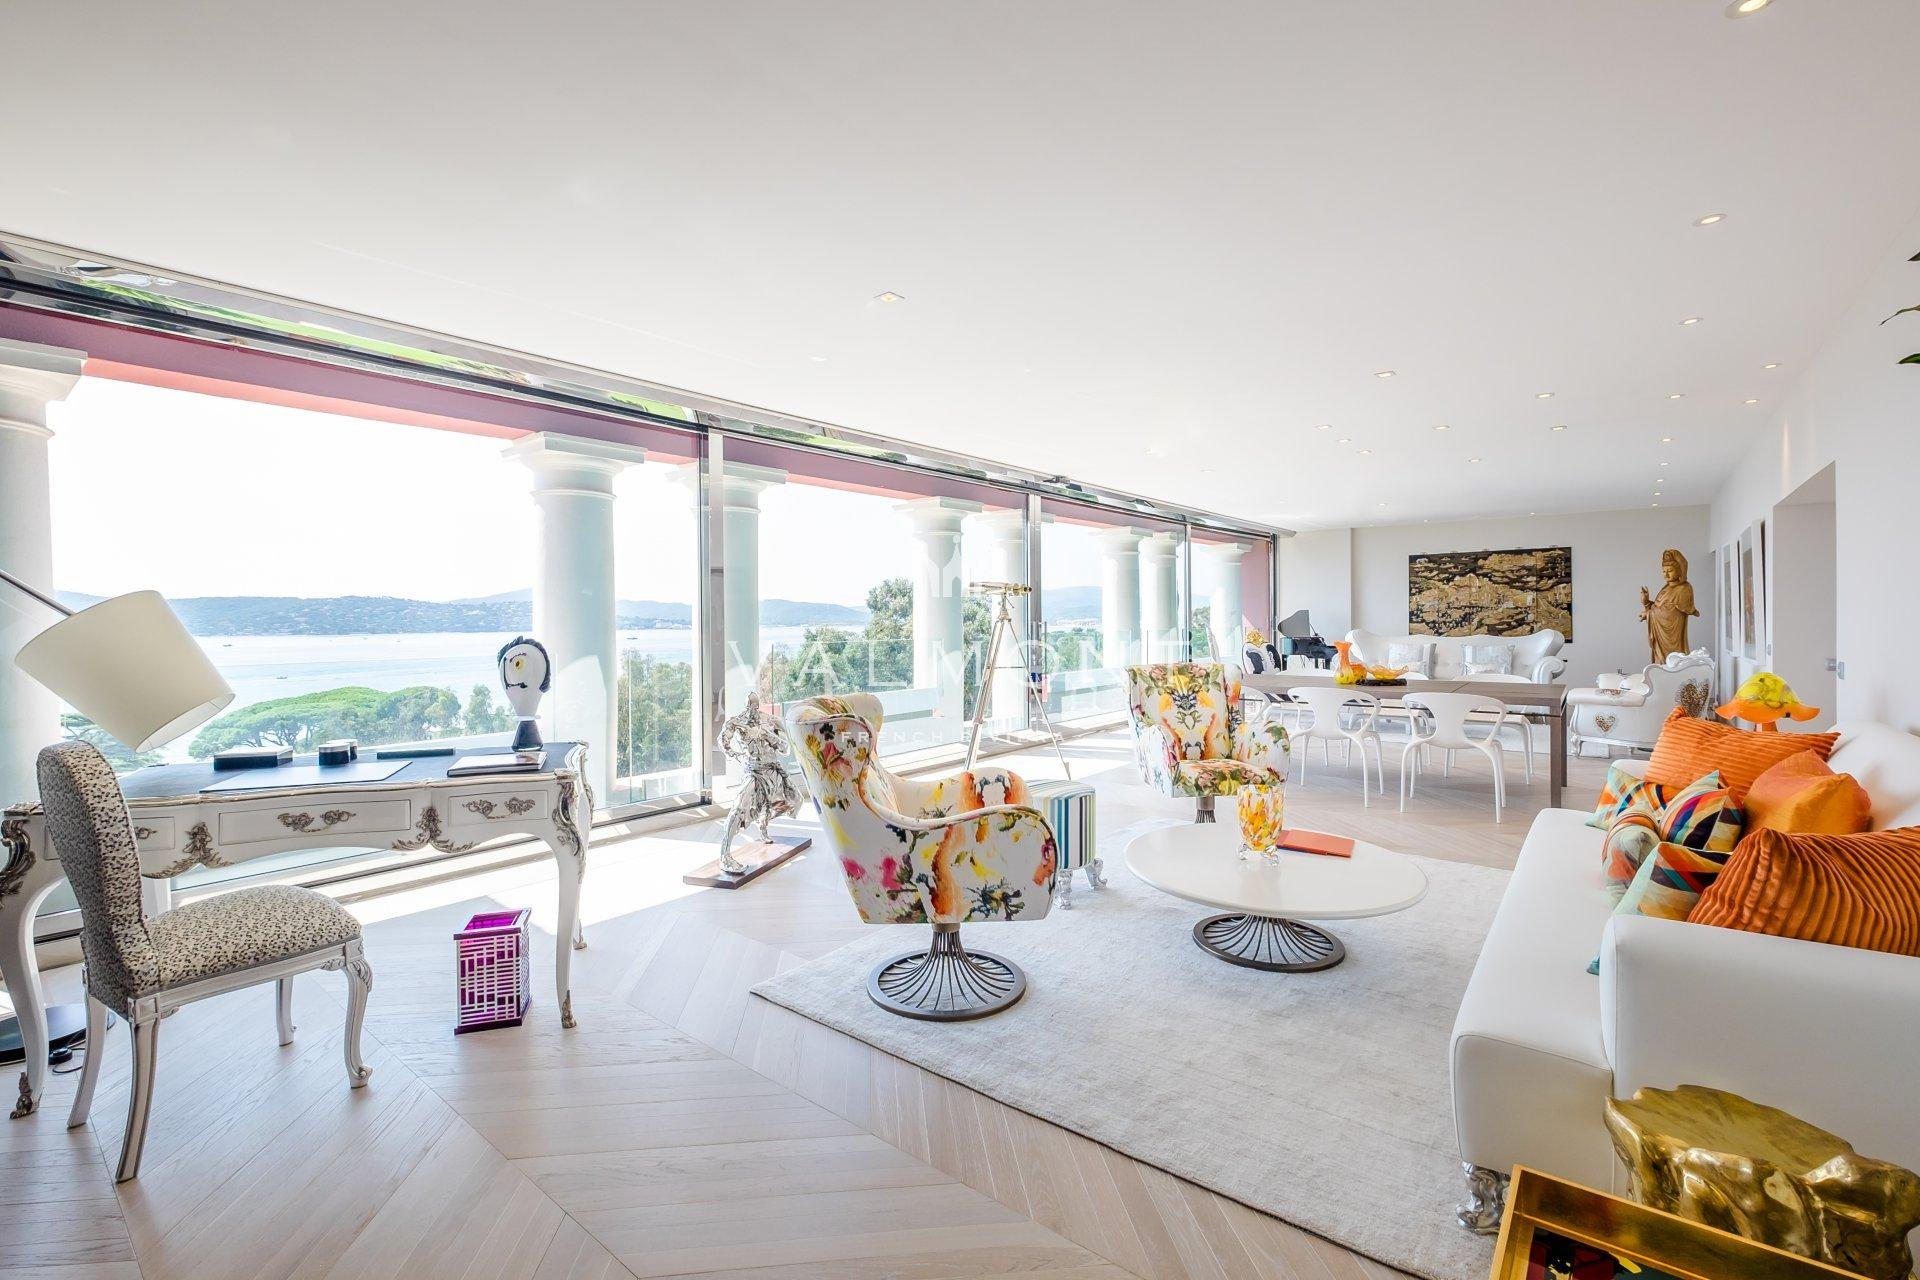 THE MOST EXTRAVAGANT PROPERTY OF THE FRENCH RIVIERA